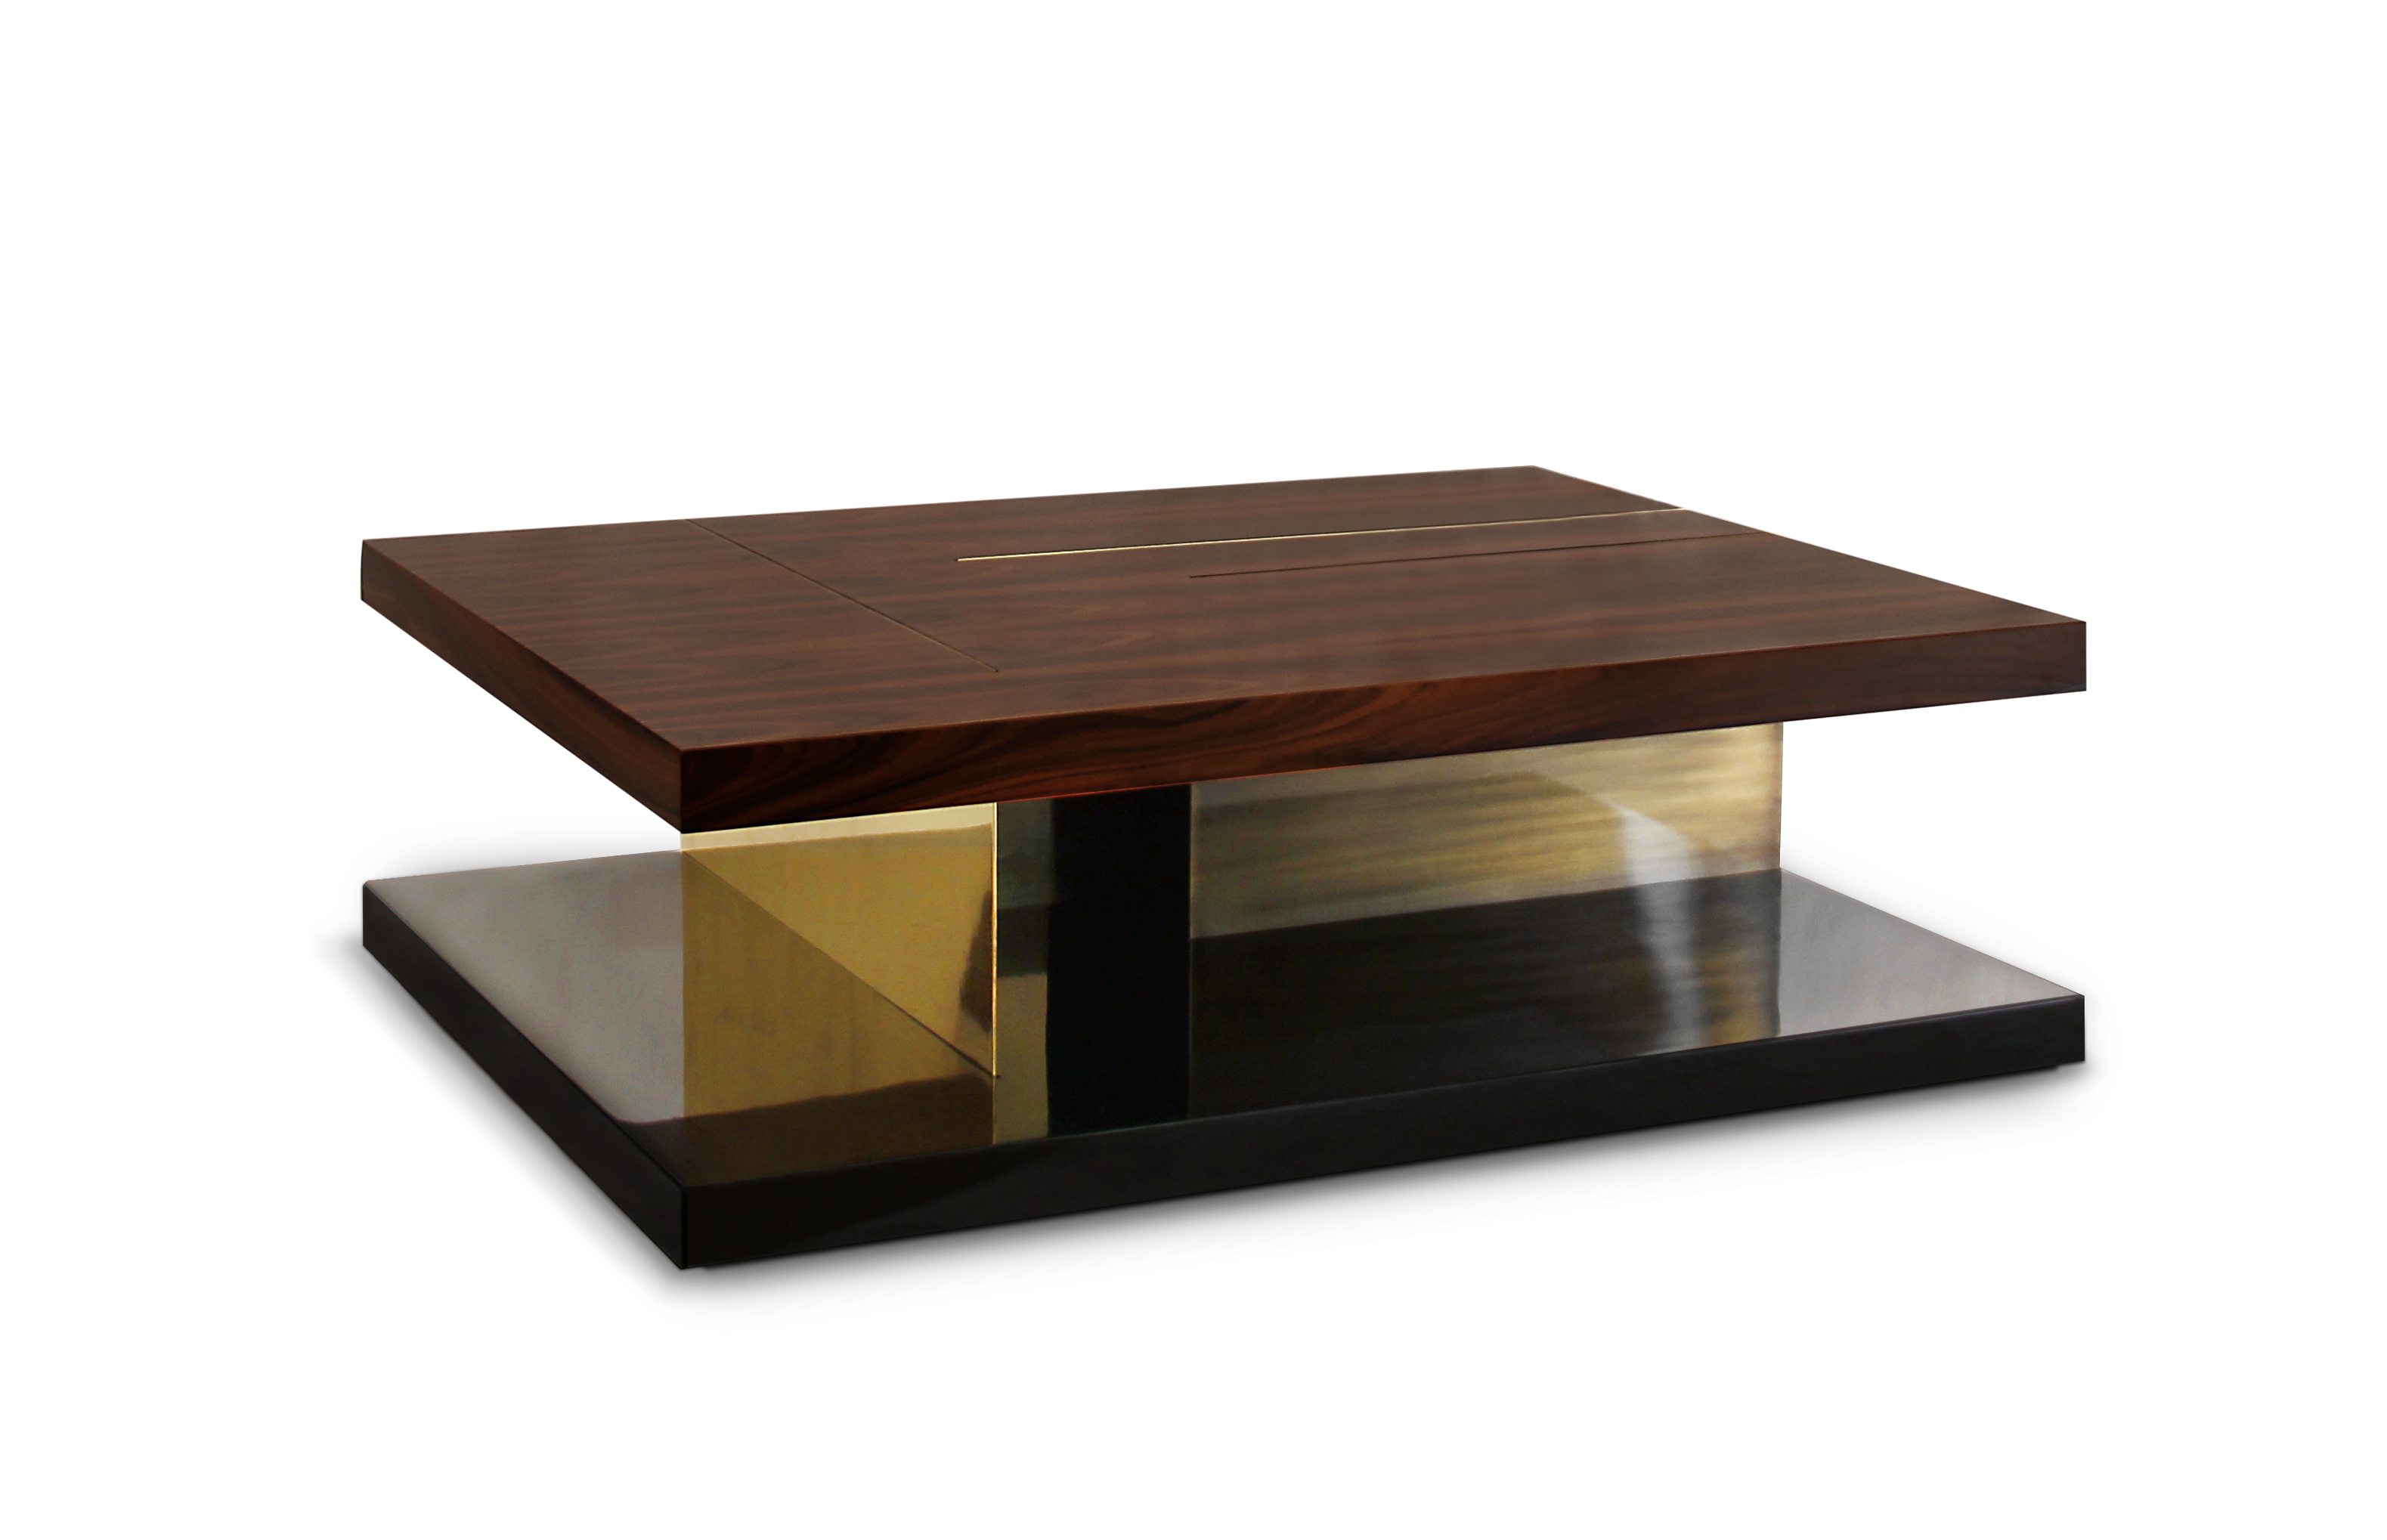 Lallan wood coffee table mid century modern design by brabbu for Table architecture